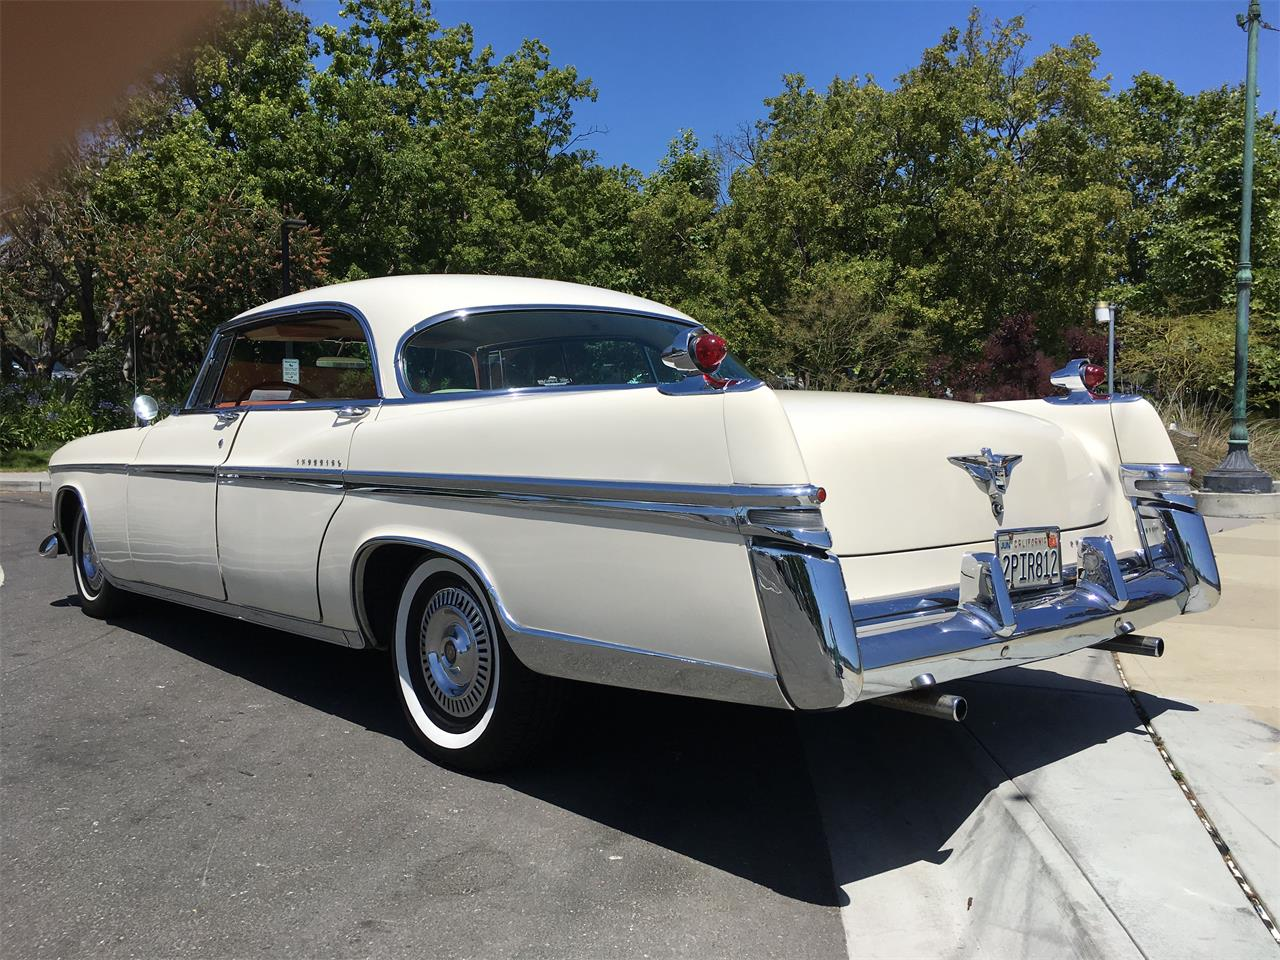 1956 Chrysler Imperial South Hampton (CC-1104156) for sale in oakland, California